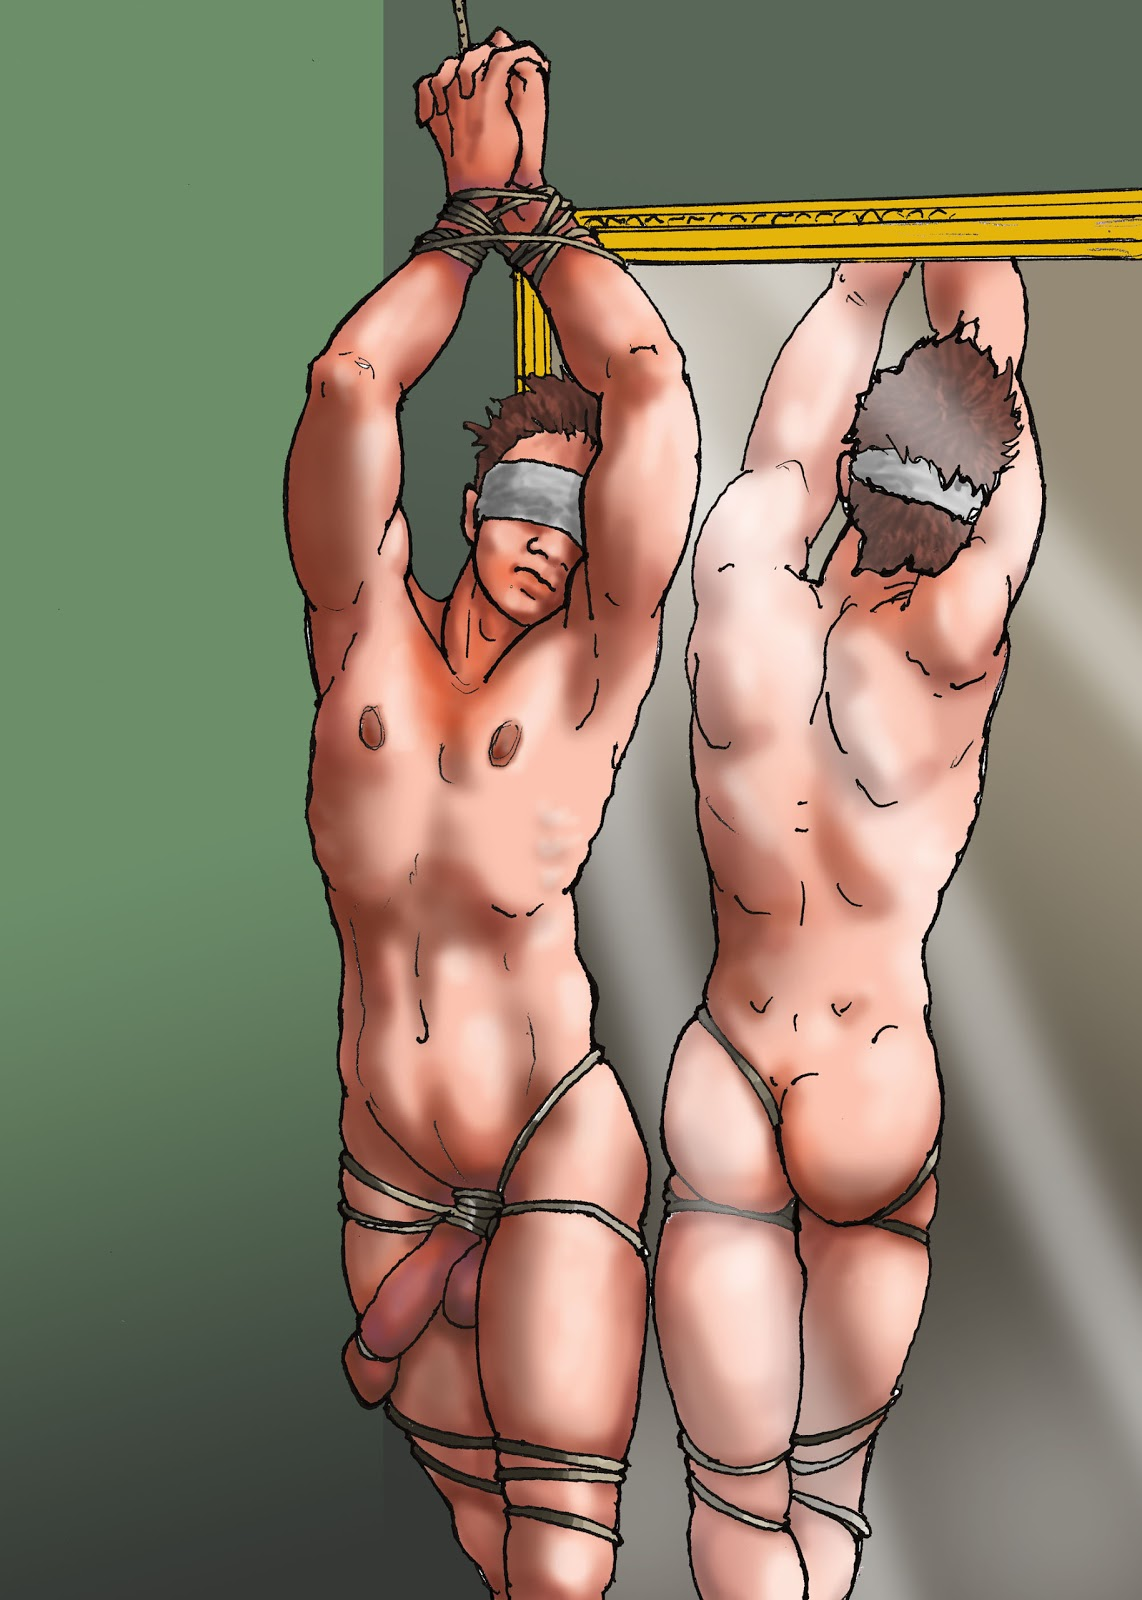 BDSM Male Drawings